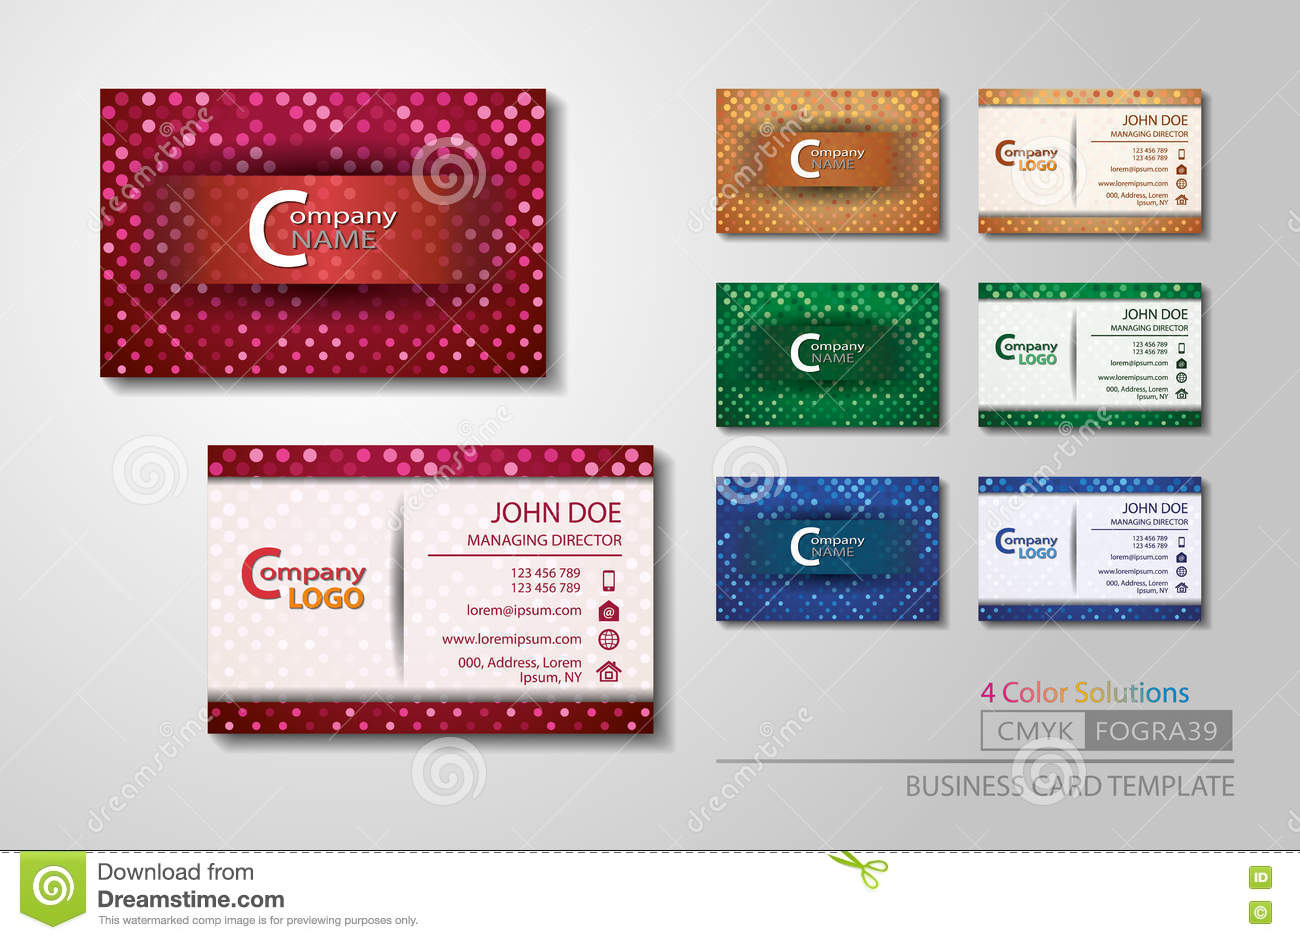 Vcard business card set 4 color stock vector illustration of cmyk download comp colourmoves